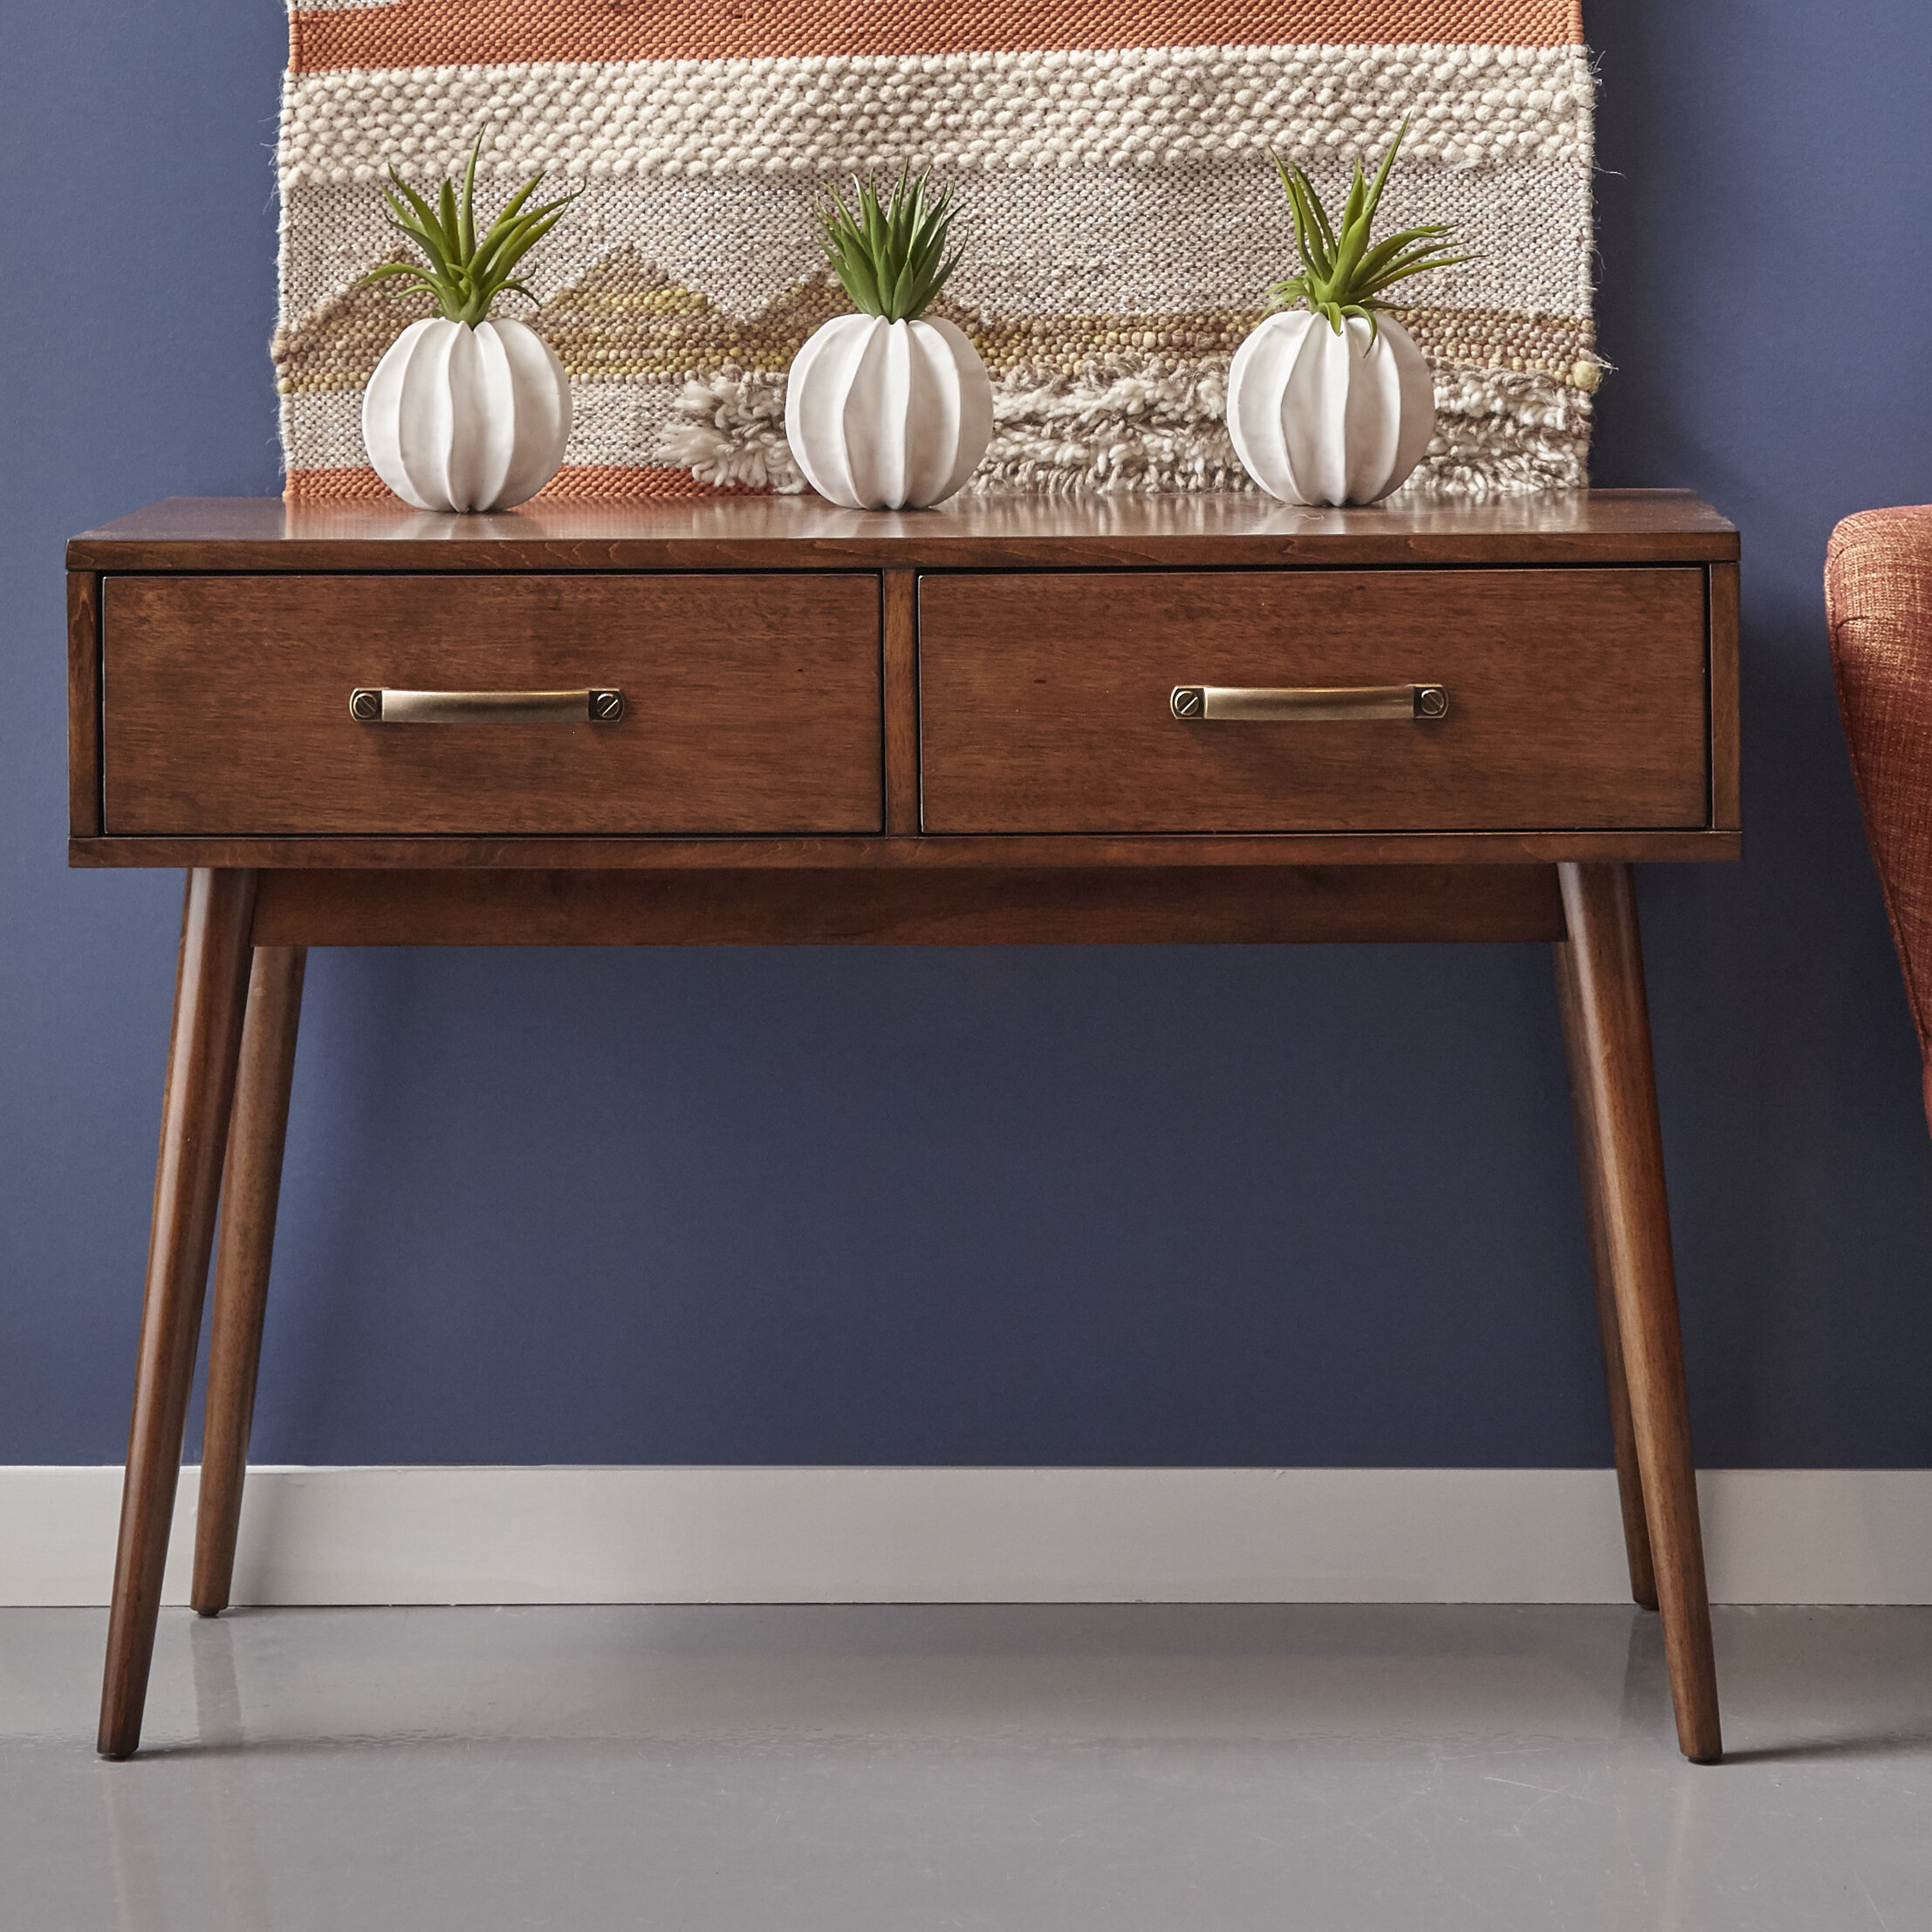 George Oliver Ripton Mid Century Modern Console Table Reviews Rh Wayfair Com Furniture Online For